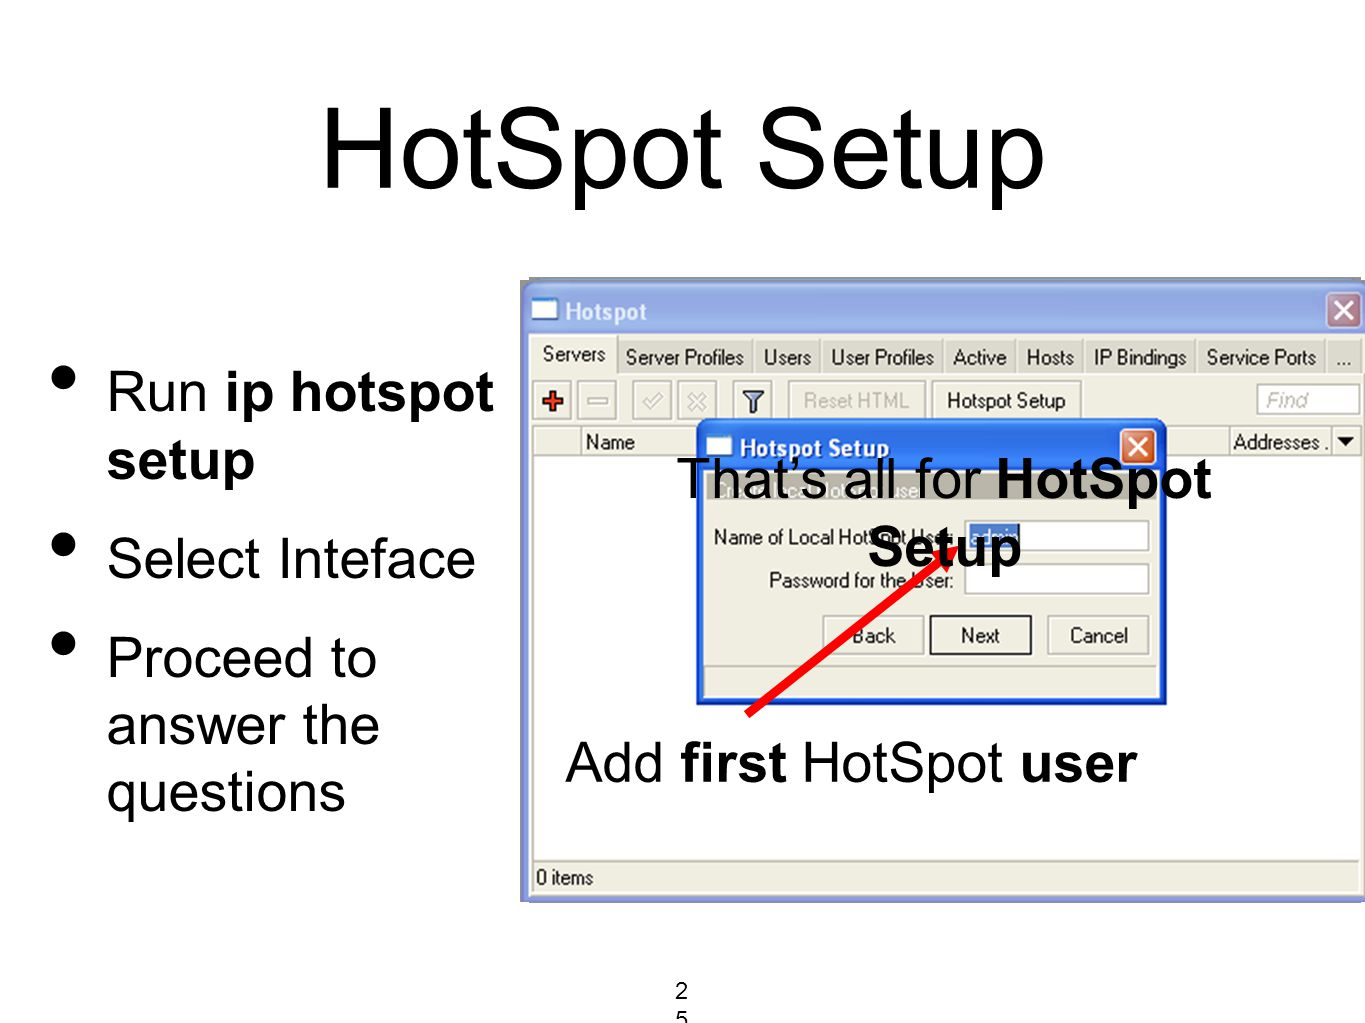 HotSpot Setup Run ip hotspot setup Select Inteface Proceed to answer the questions Select Interface to run HotSpot on HotSpot address will be selected